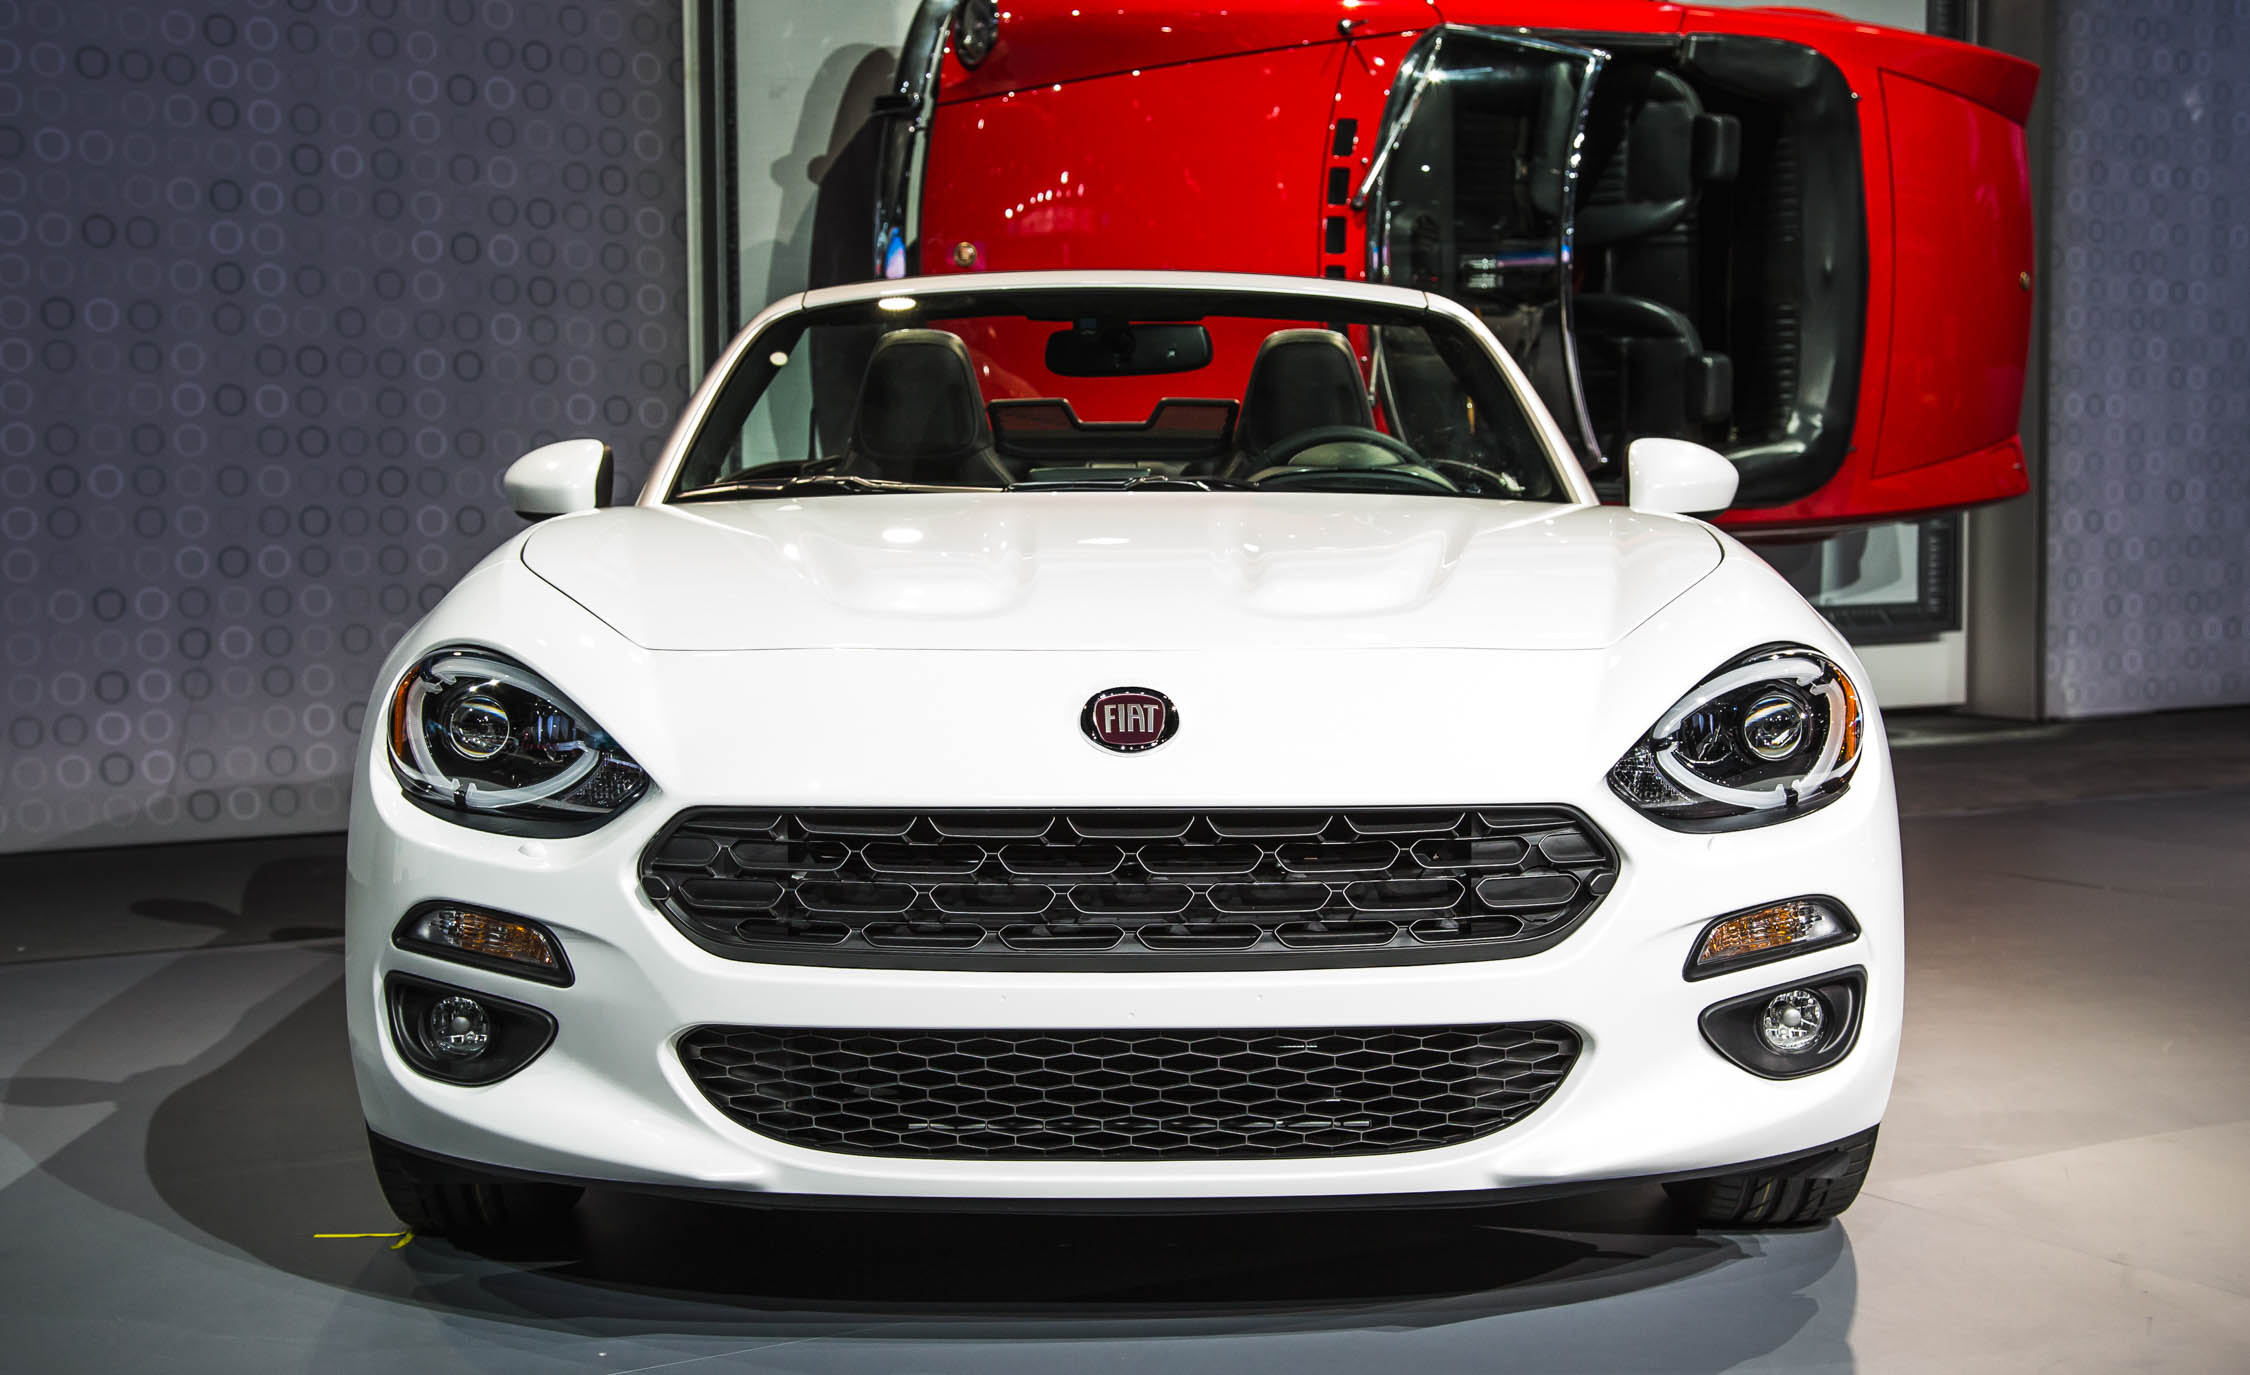 2017 Fiat 124 Spider White Front End Exterior